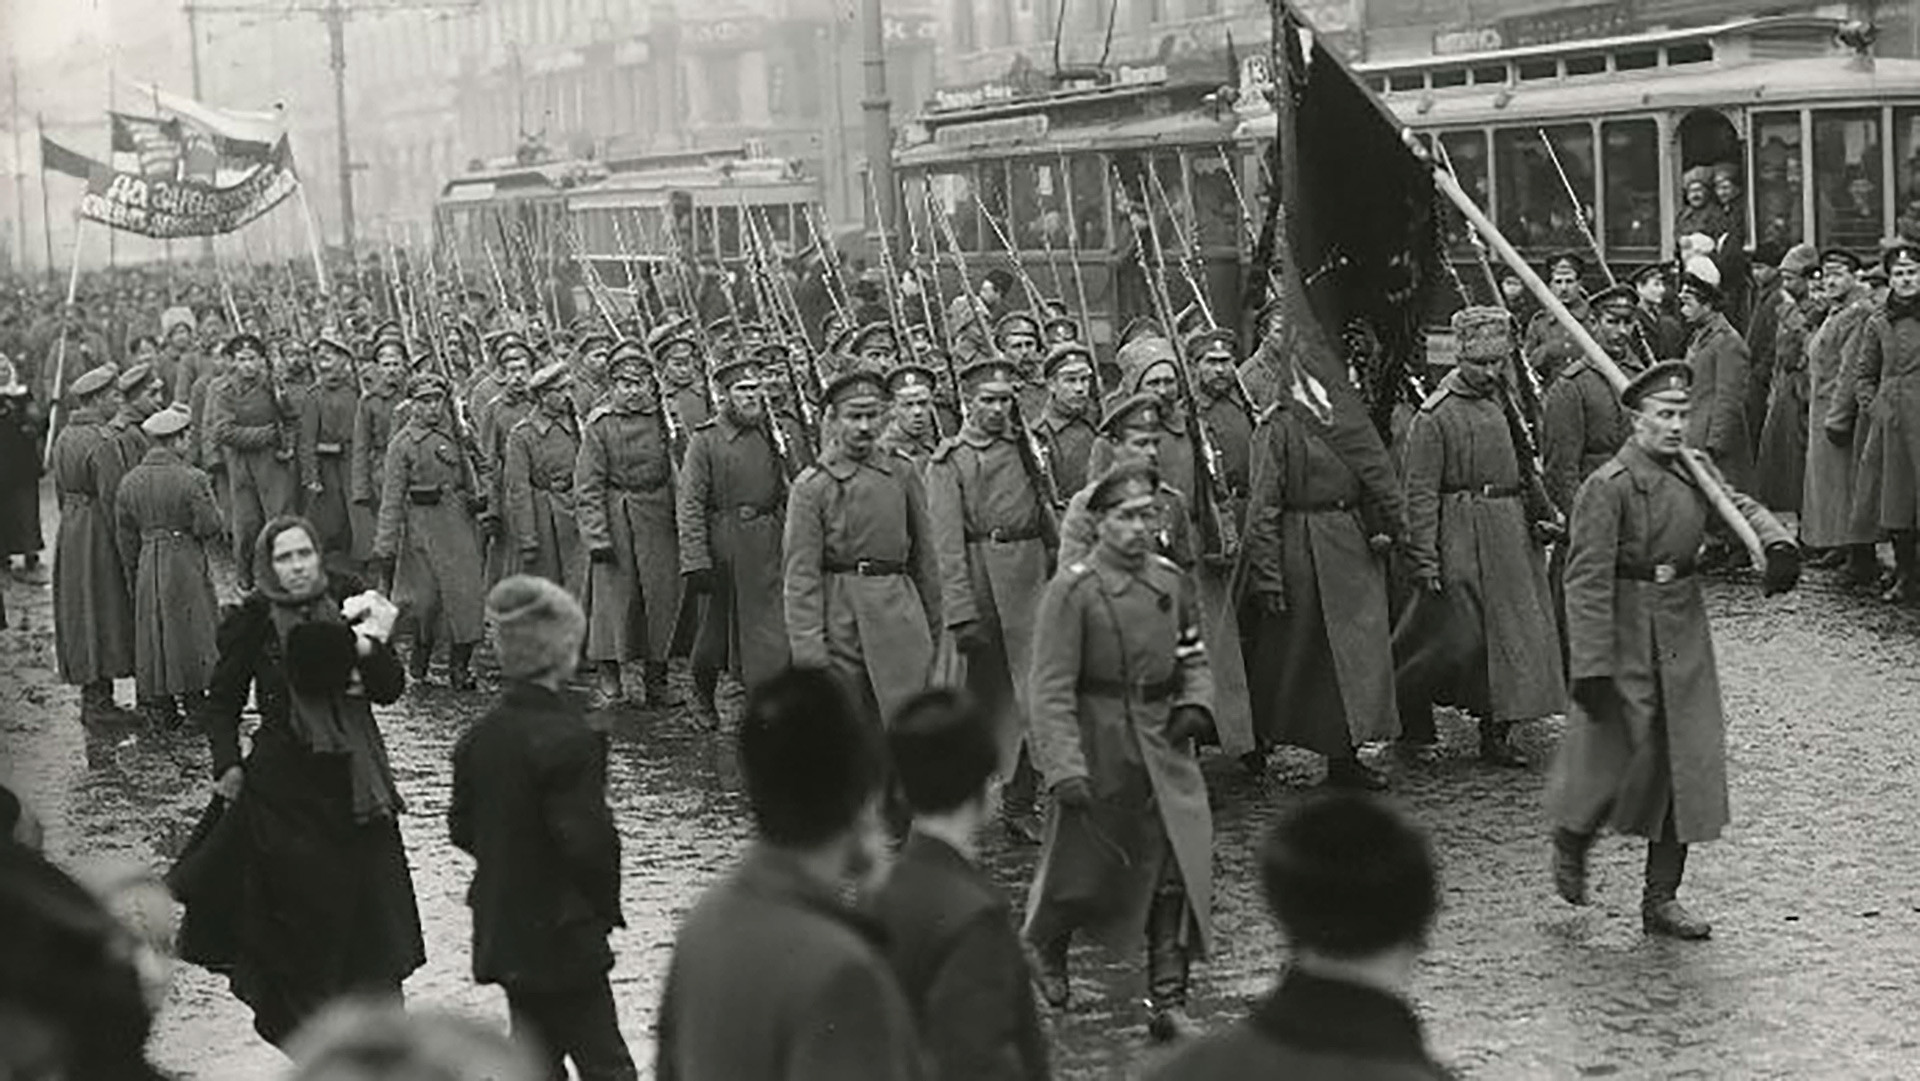 The Preobrazhensky regiment marching on Nevsky Prospect